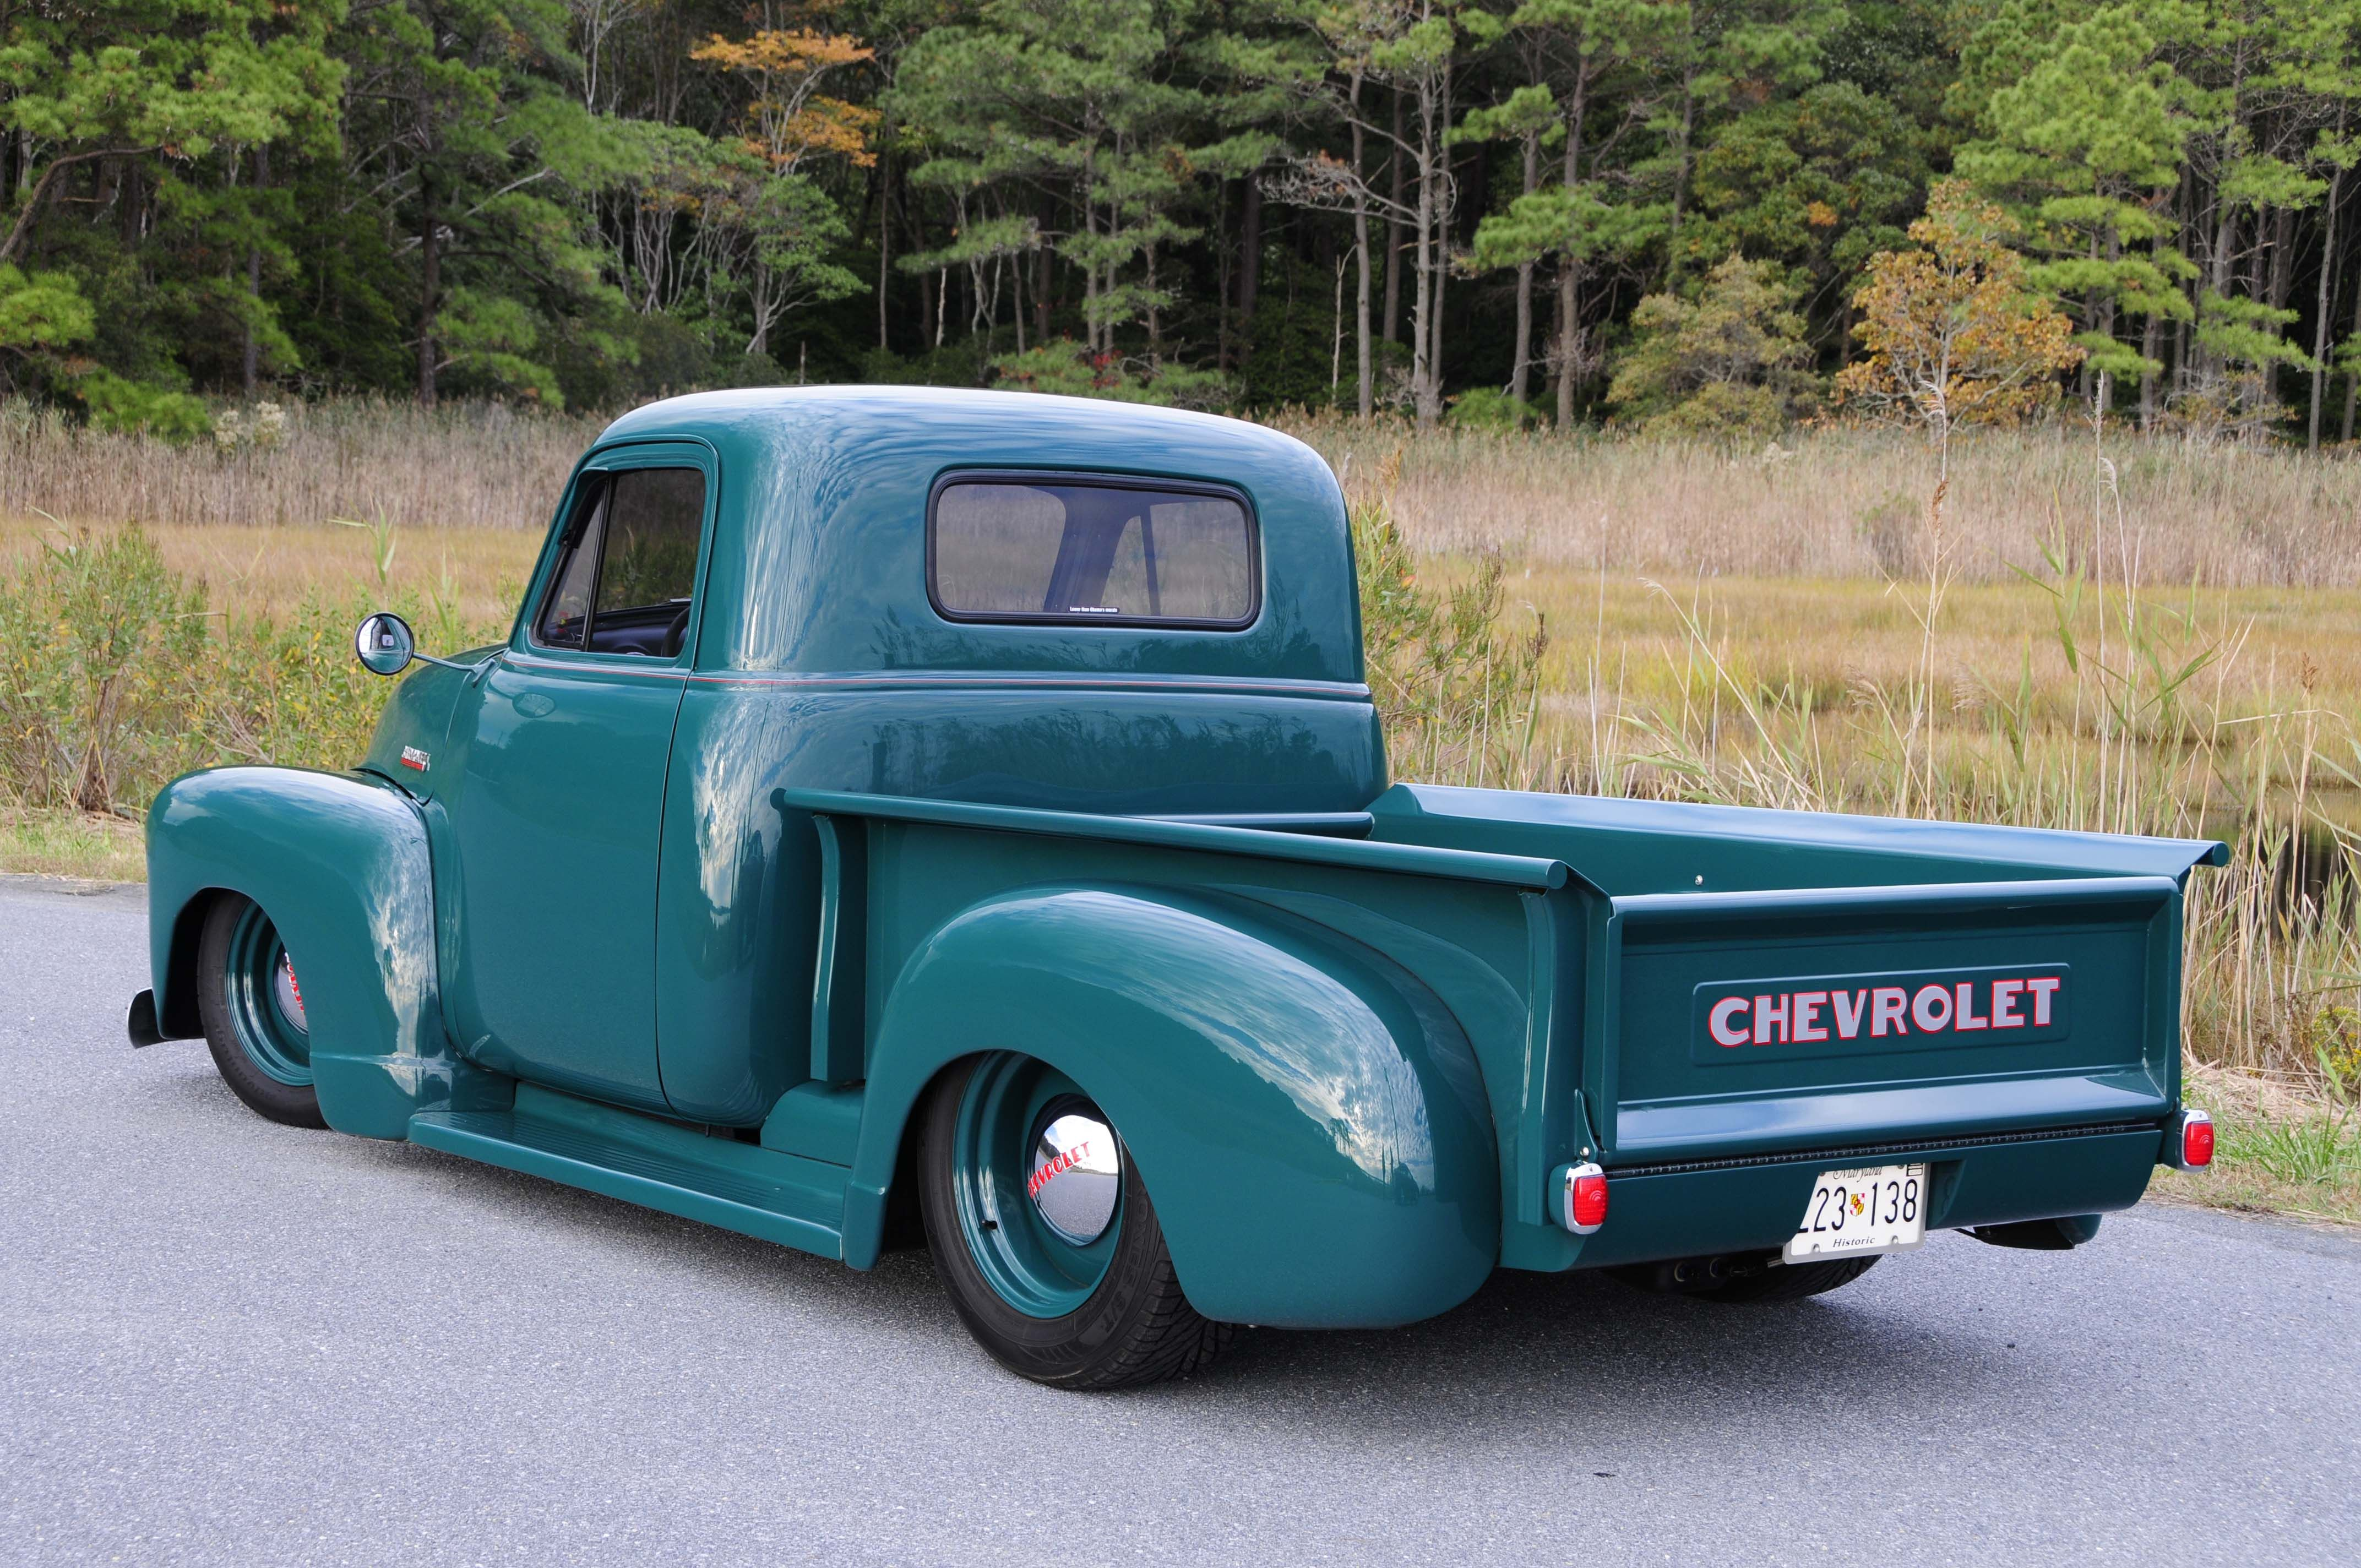 Pin by T Smith on Old trucks | Pinterest | Chevy pickups, Classic ...